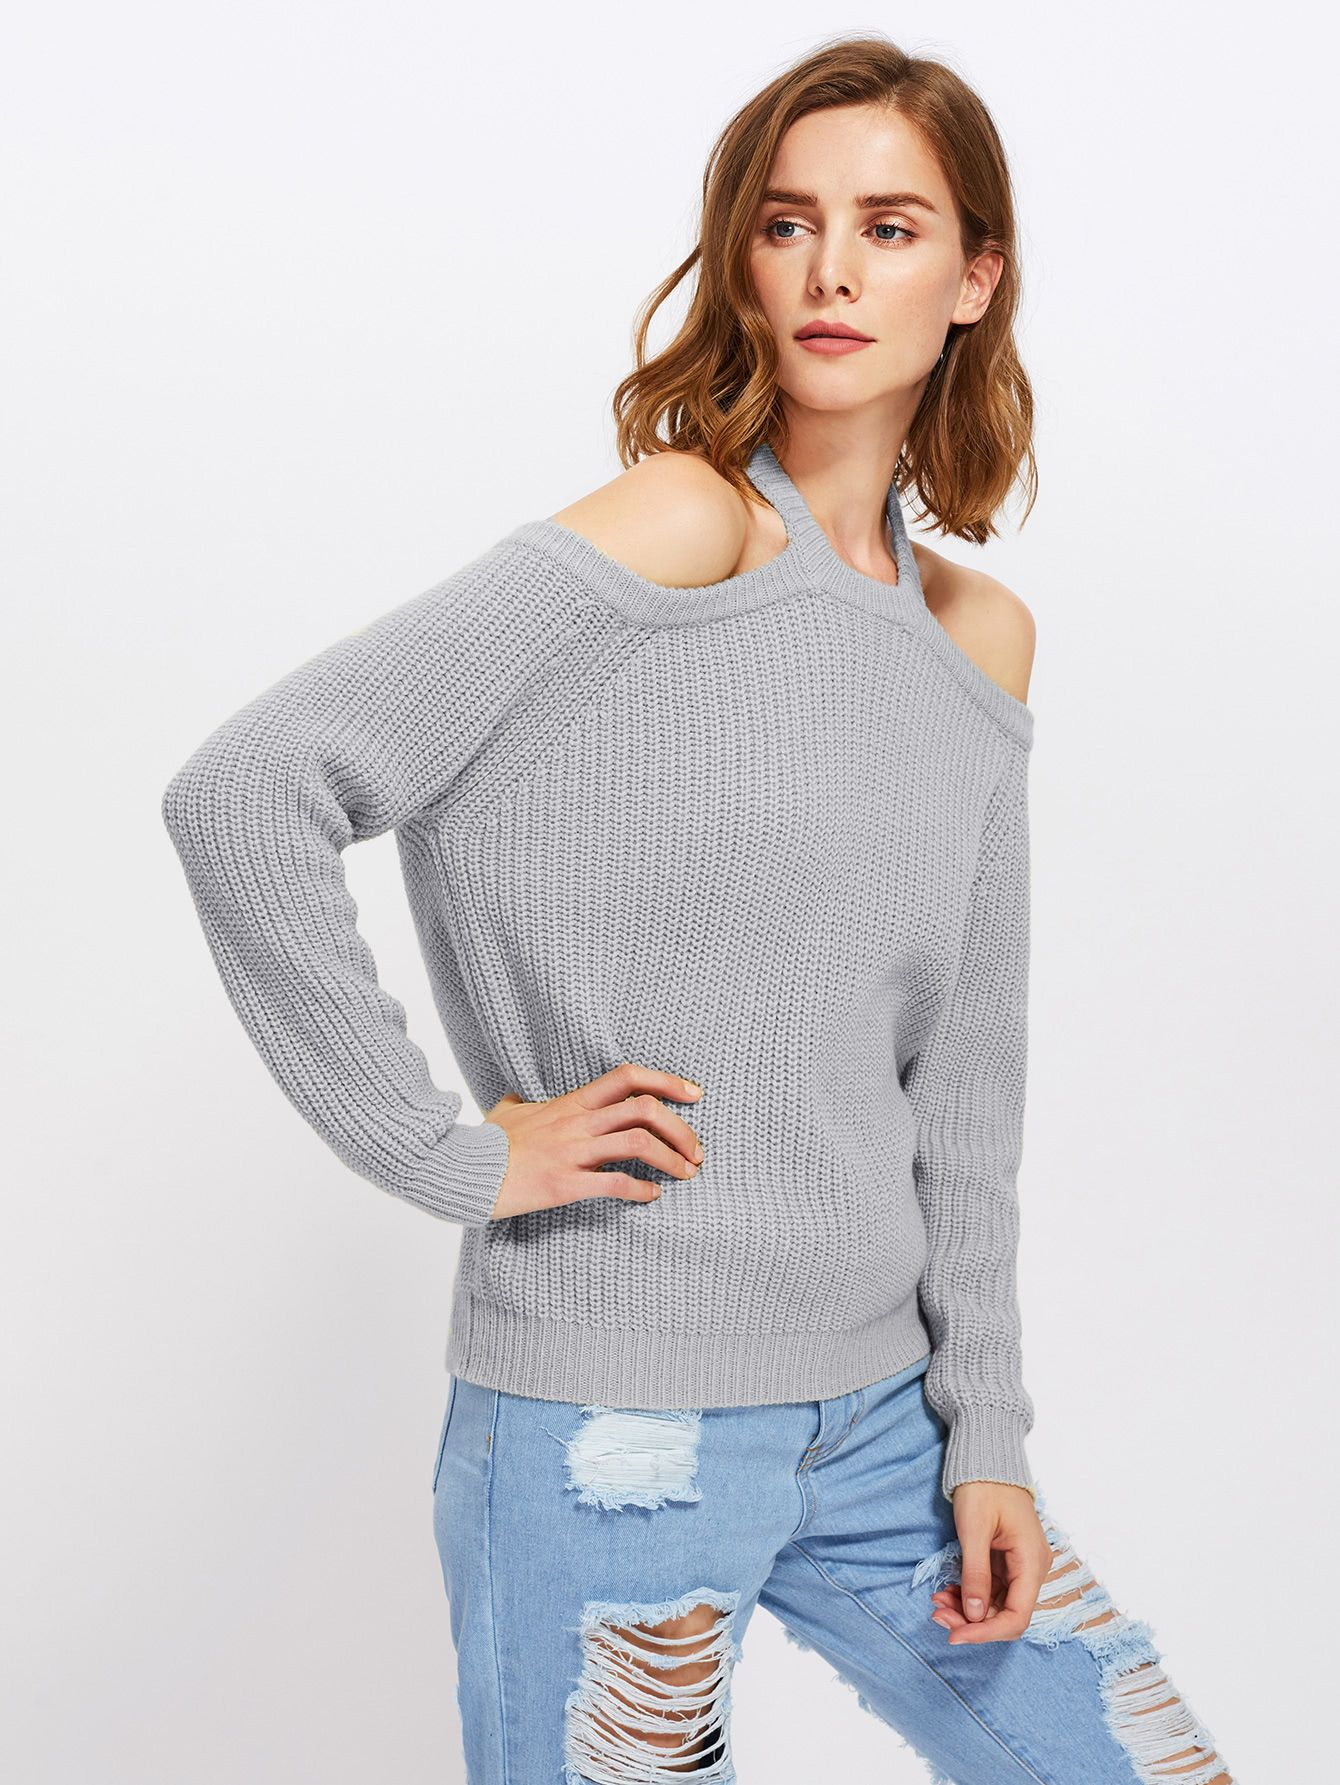 b9690cf2a93 Halter Off Shoulder Jumper Factory - Shantou ZQ Sweater Factory - a ...